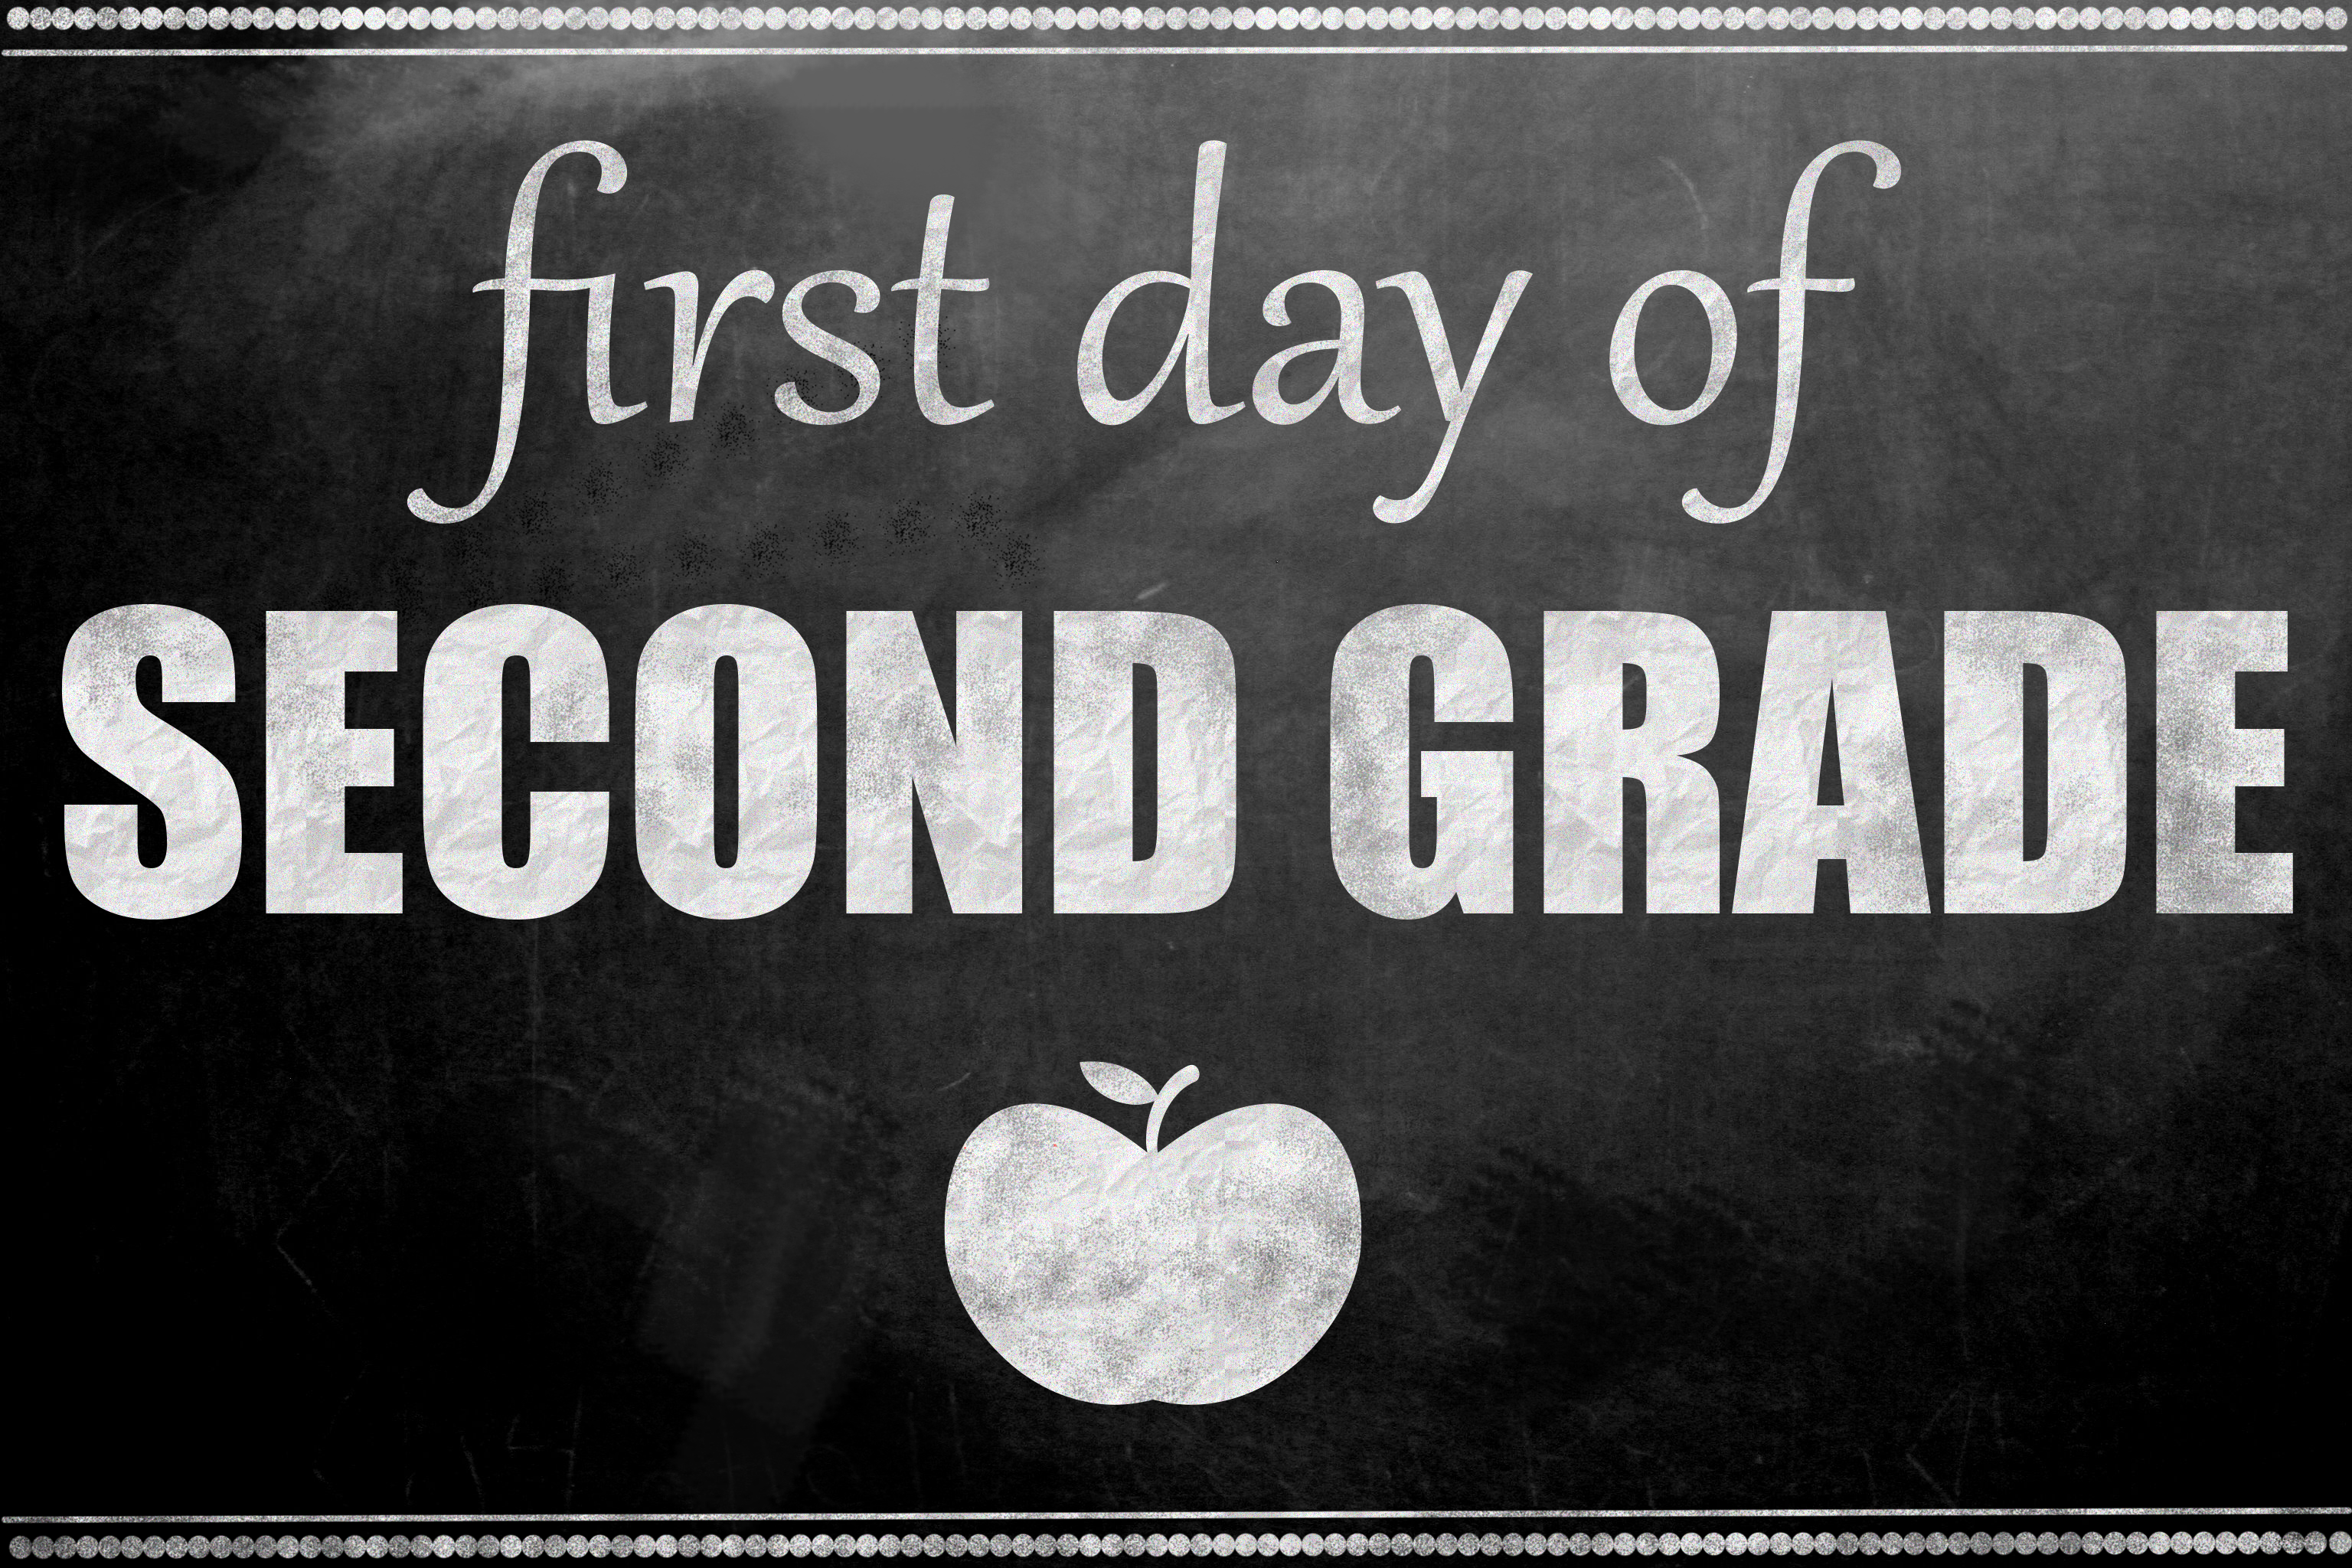 photo regarding First Day of 2nd Grade Printable Sign named To start with Working day of Higher education Printable Signs or symptoms - woman. Impressed.